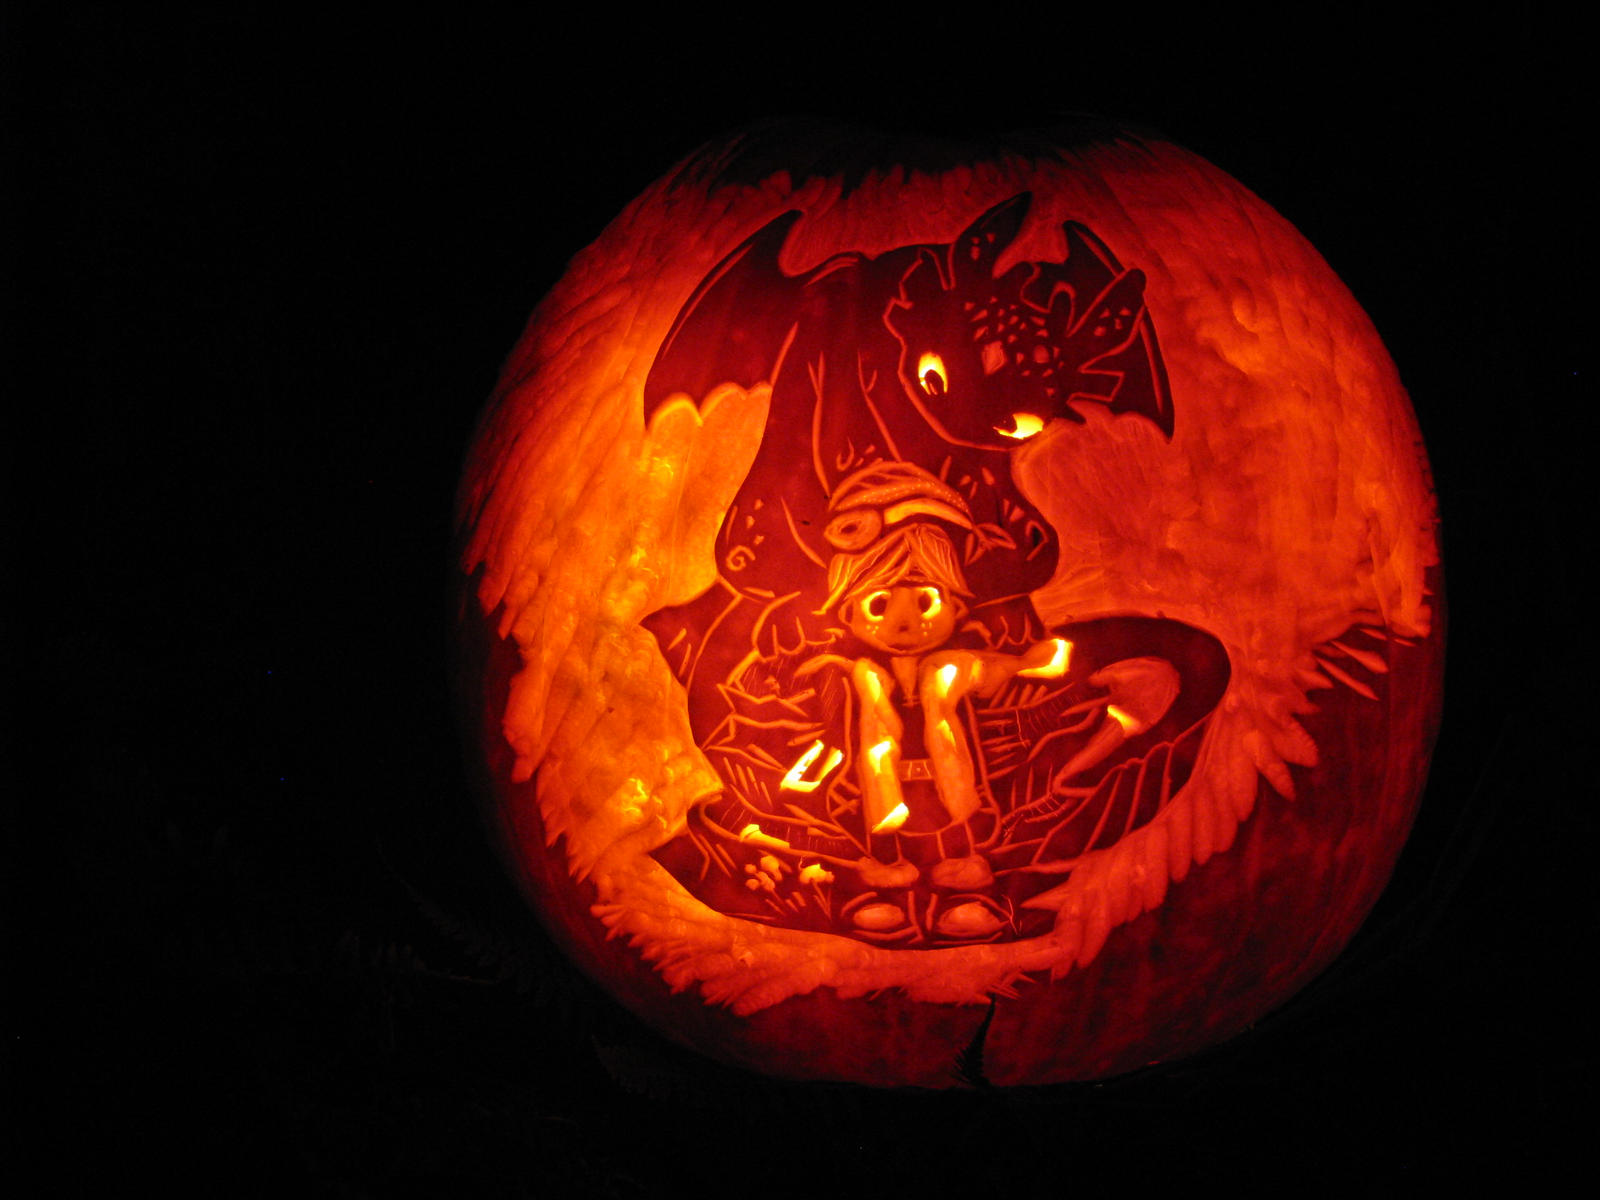 Toothless and hiccup pumpkin by emerada on deviantart